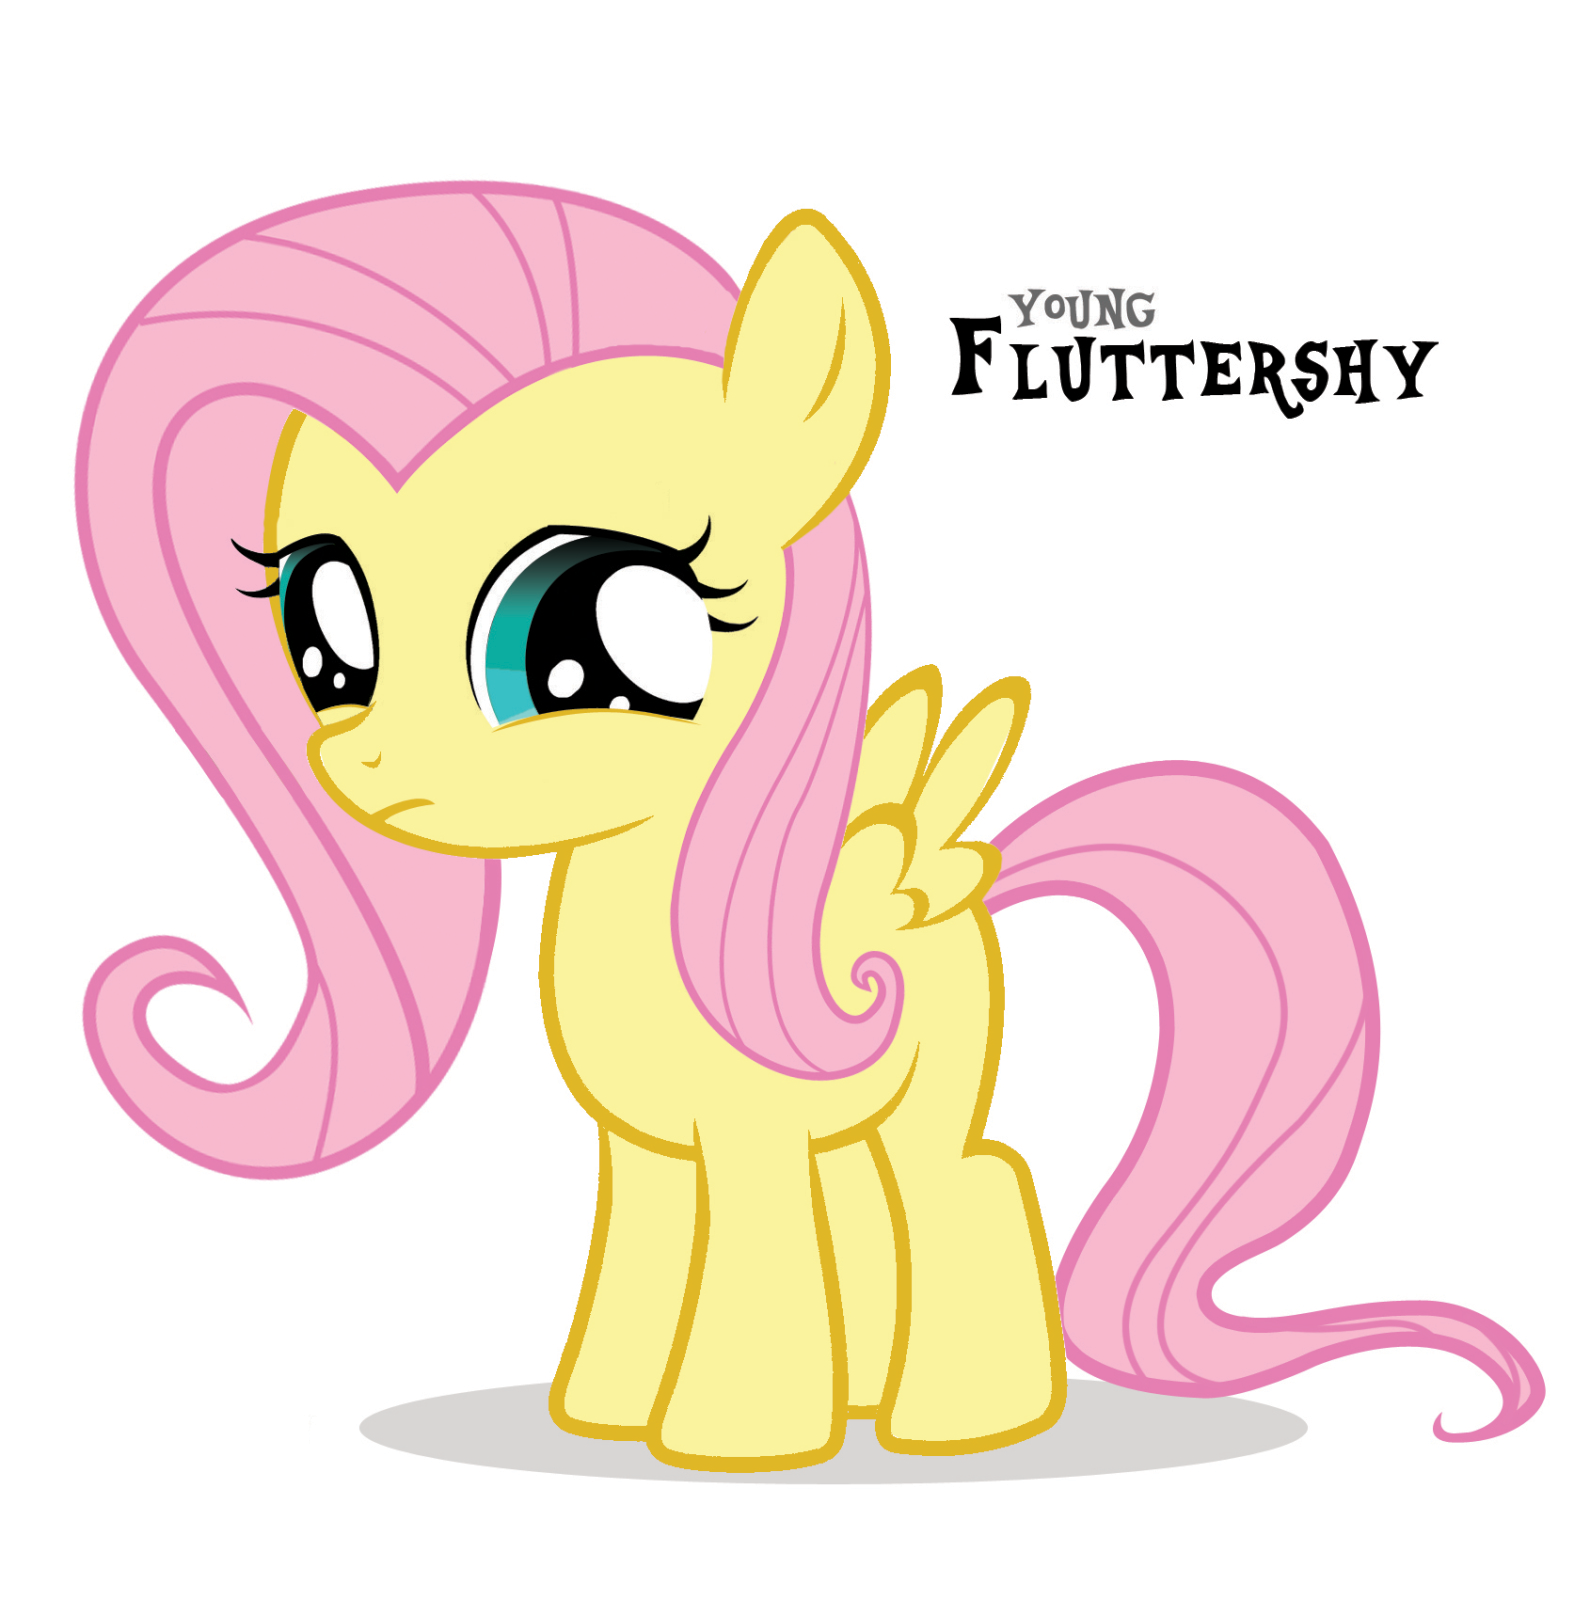 Ficheiro:4611 - Fluttershy Young.png